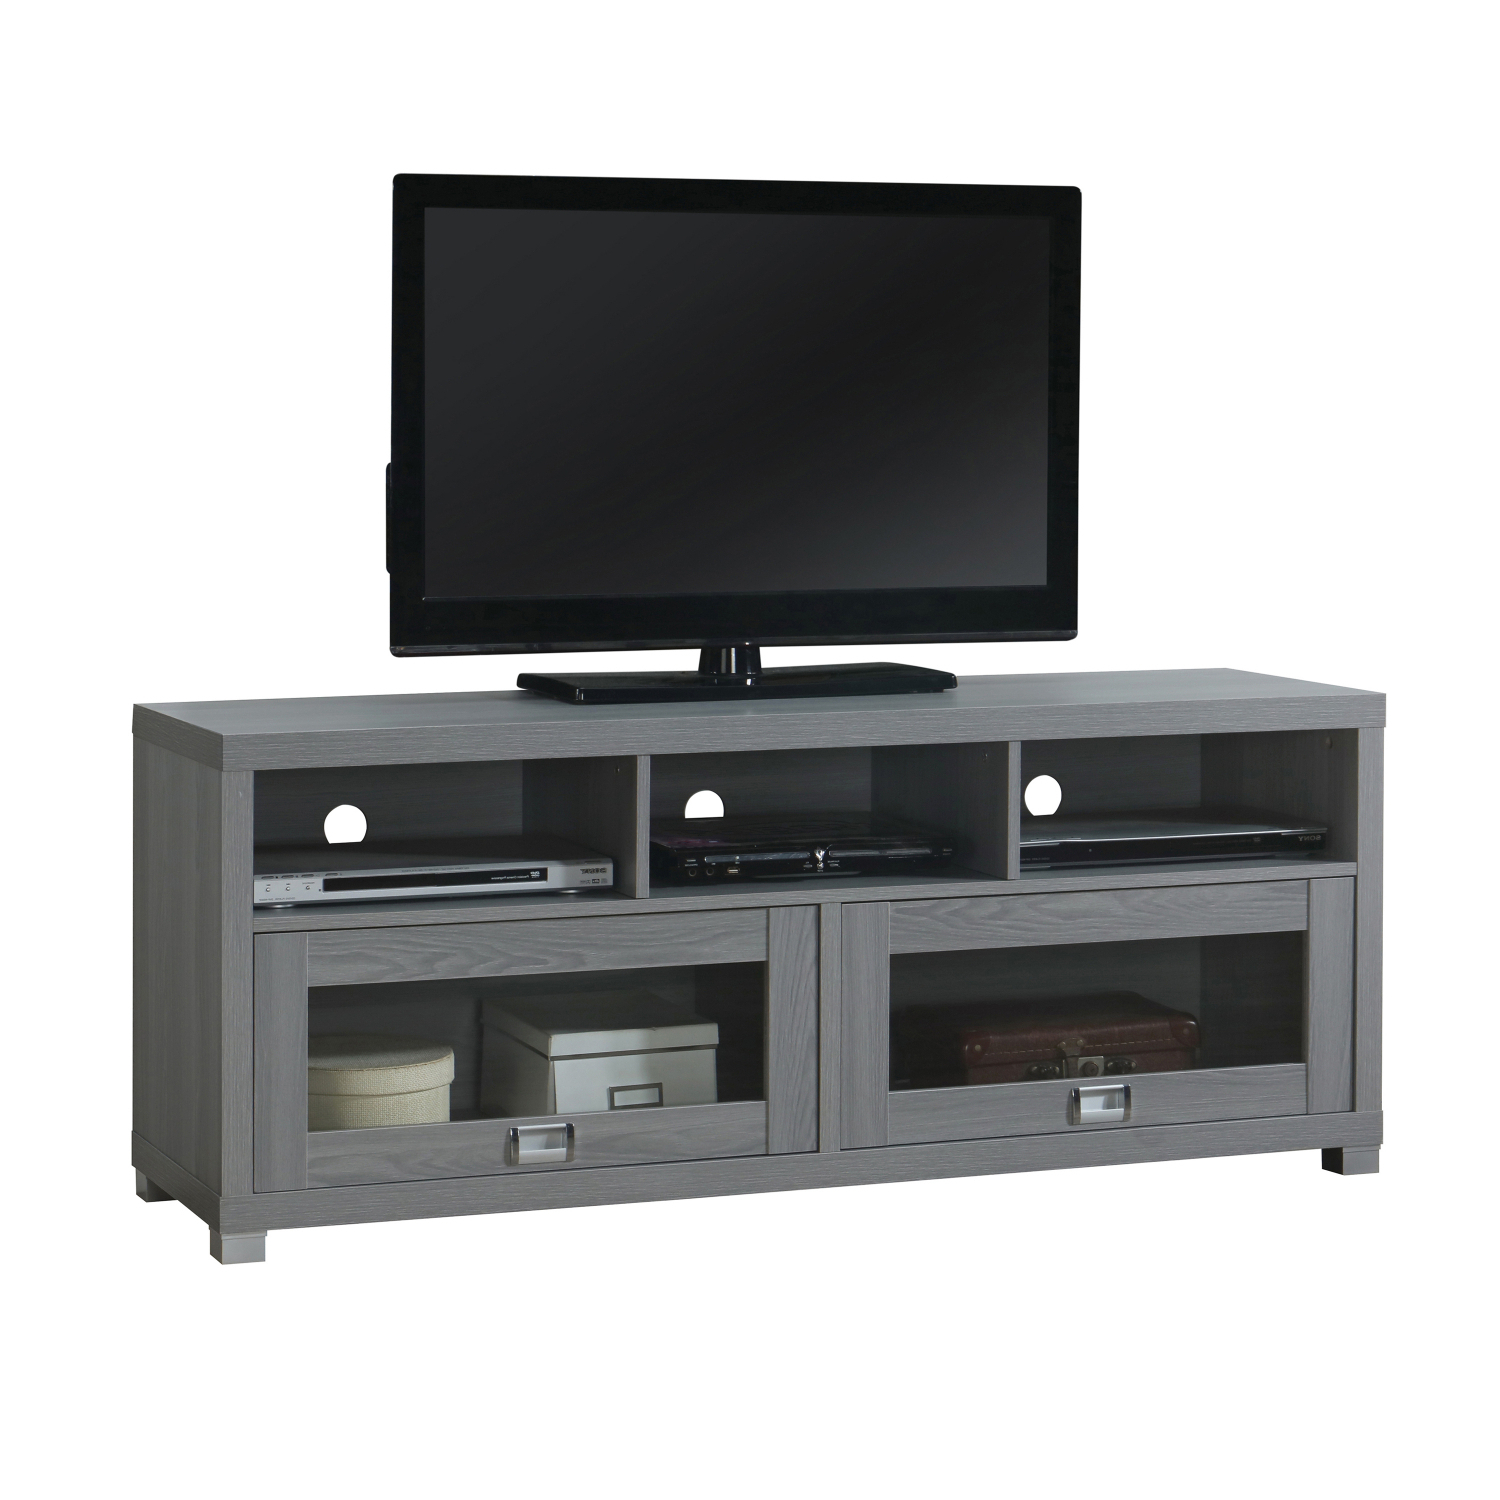 """Tv Stand 75 Inch Flat Screen Home Furniture Entertainment Inside Chrissy Tv Stands For Tvs Up To 75"""" (View 9 of 20)"""